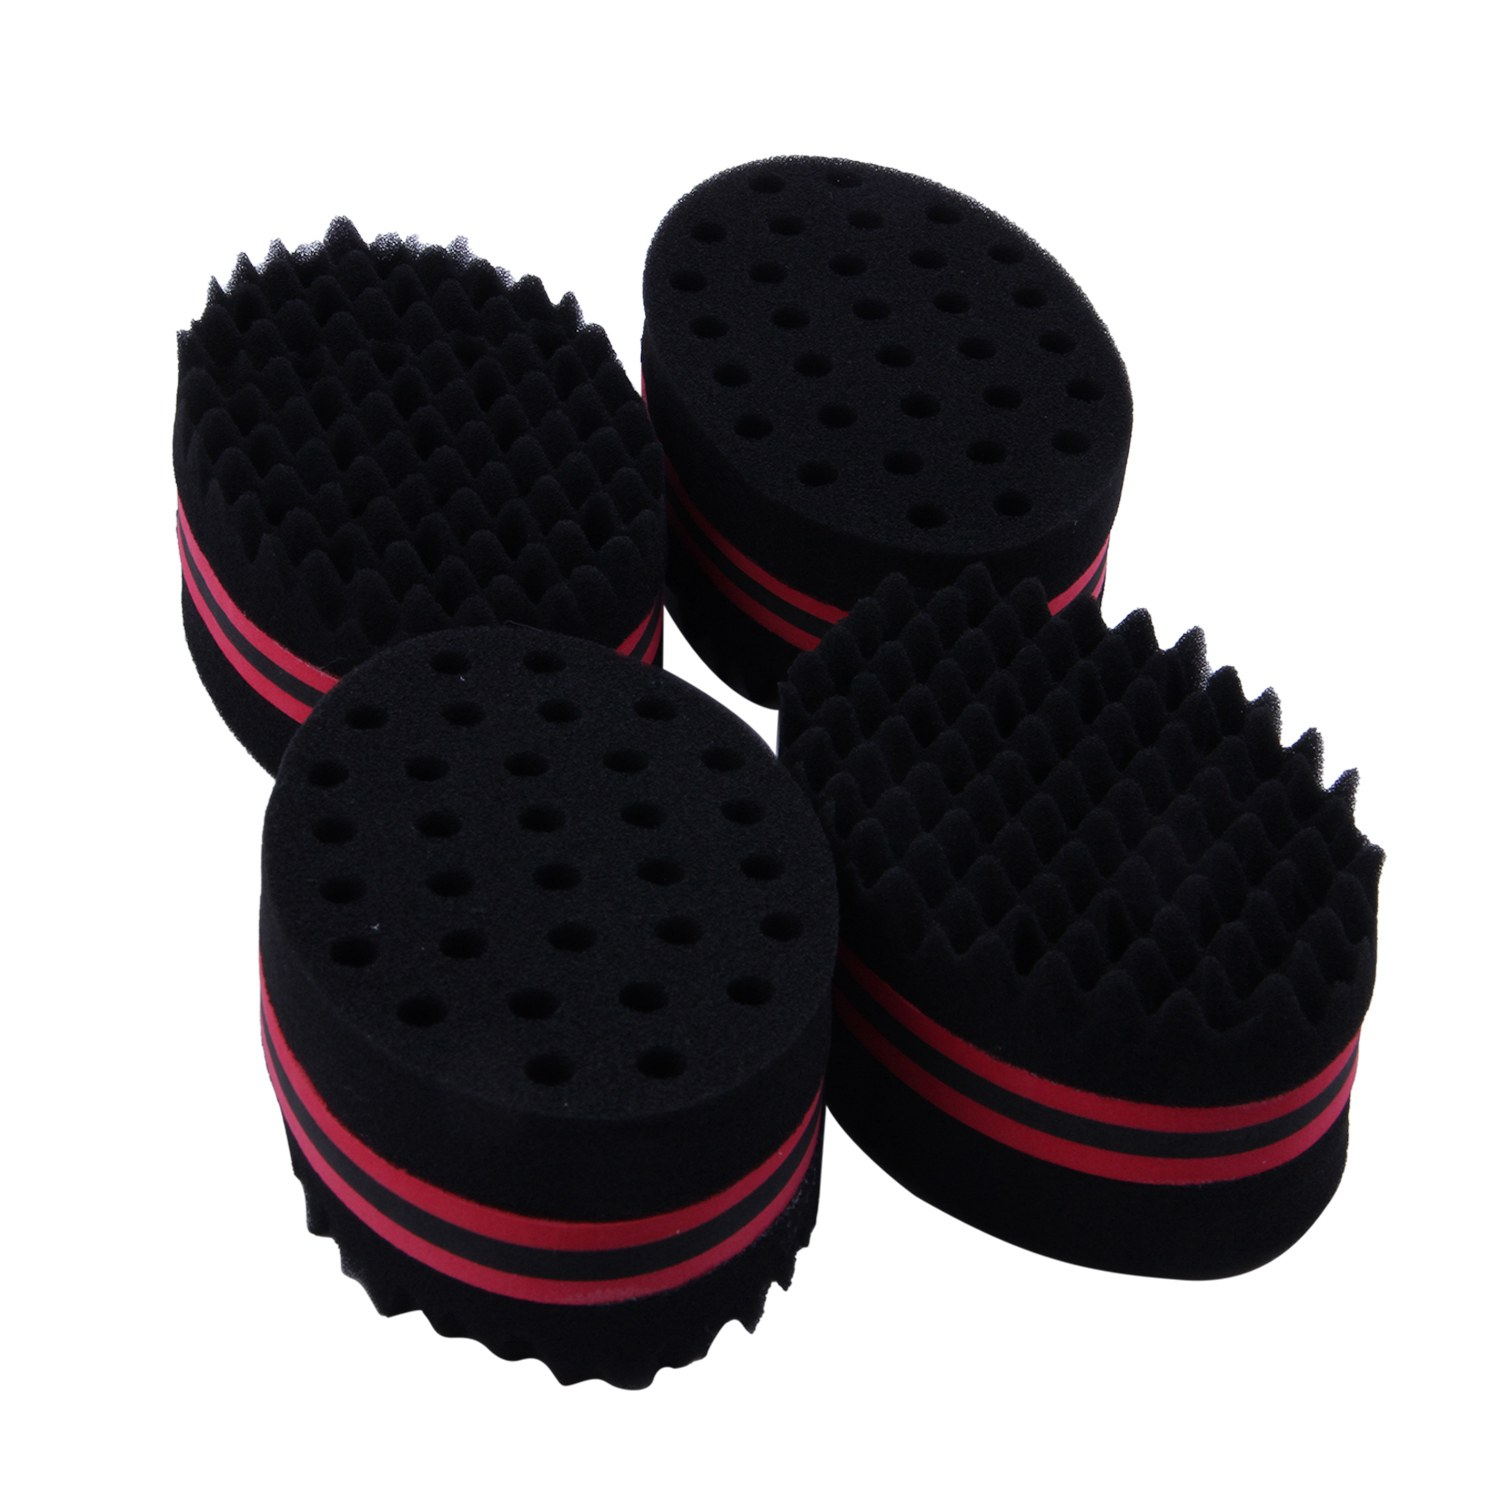 Set Of 4 Hair Brush Sponge Twist Wave Barber Tool For Dreads Afro Locs Twist Curl Black Red Firm In Structure Personal Care Appliances Home Appliances